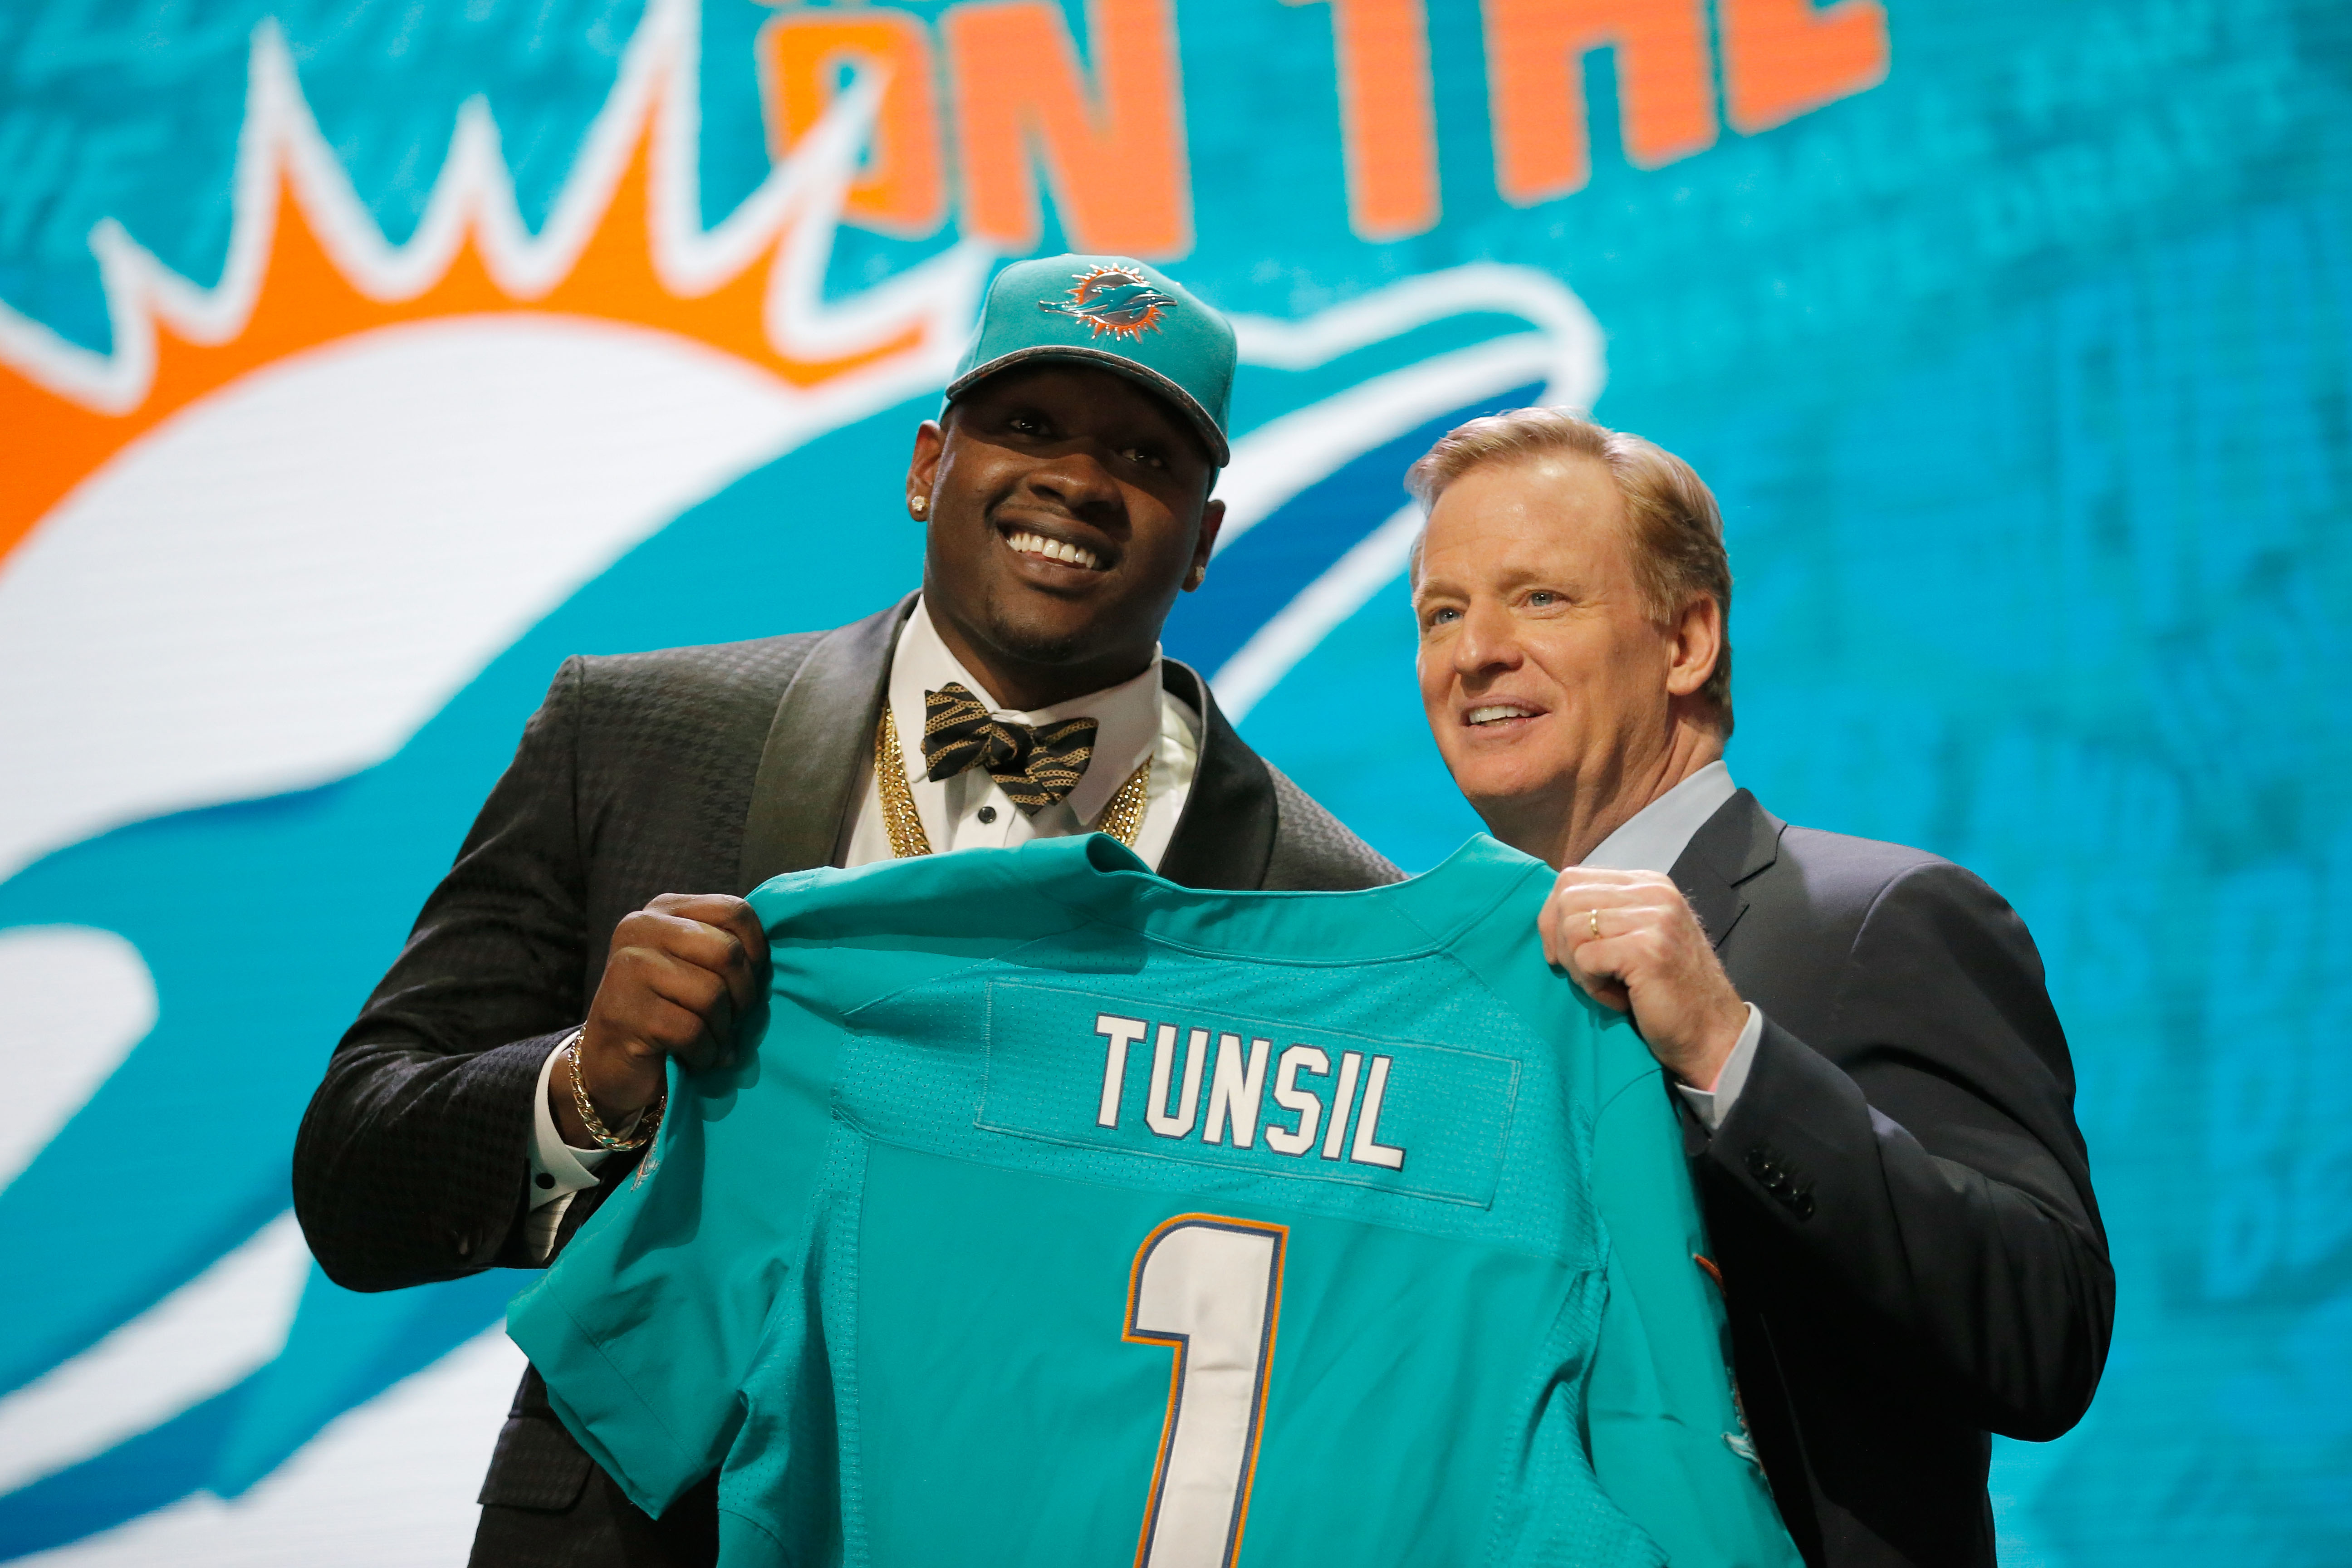 Laremy Tunsil of Ole Miss -- who had a long wait -- is greeted by NFL Commissioner Roger Goodell after being picked 13th overall by the Miami Dolphins.  (Getty Images)